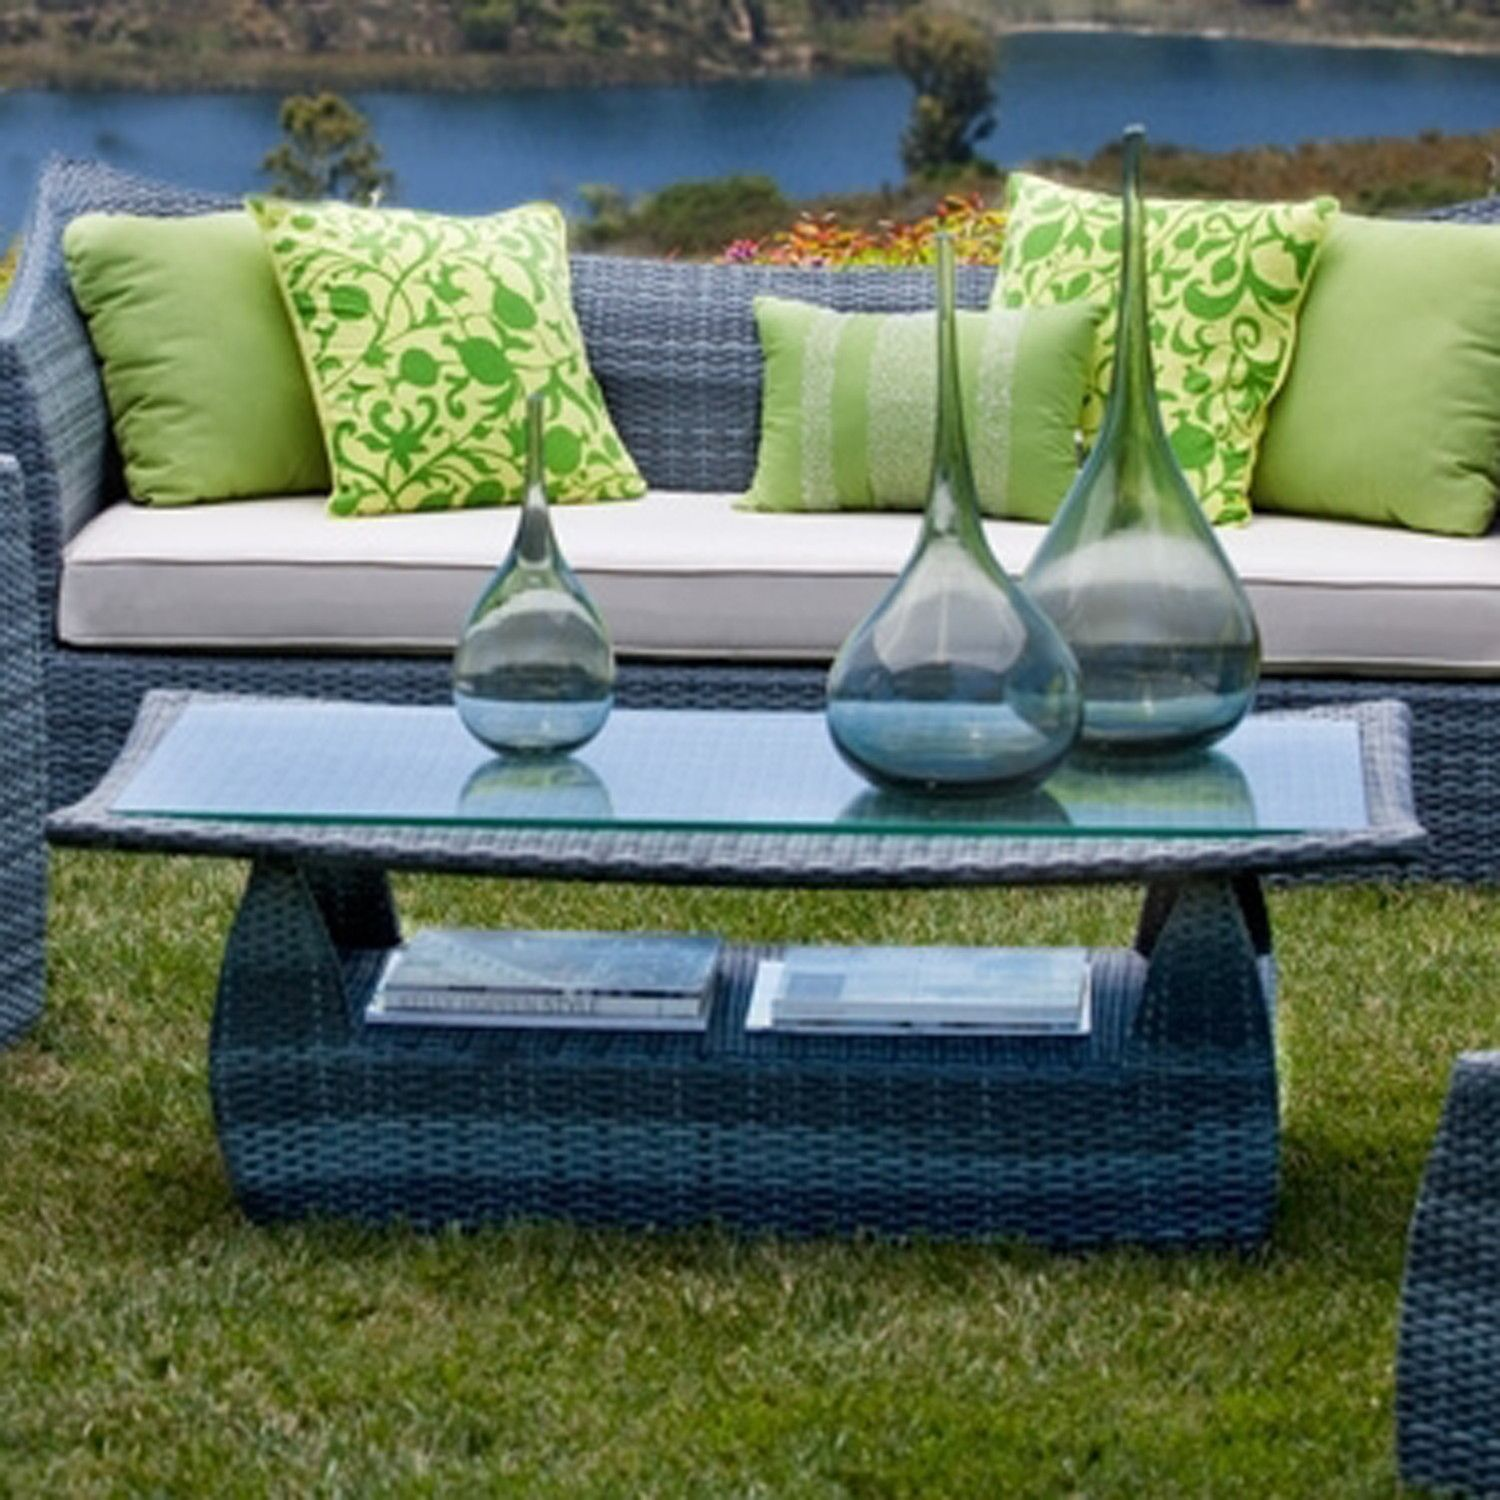 Green and blue color scheme for outdoor furniture